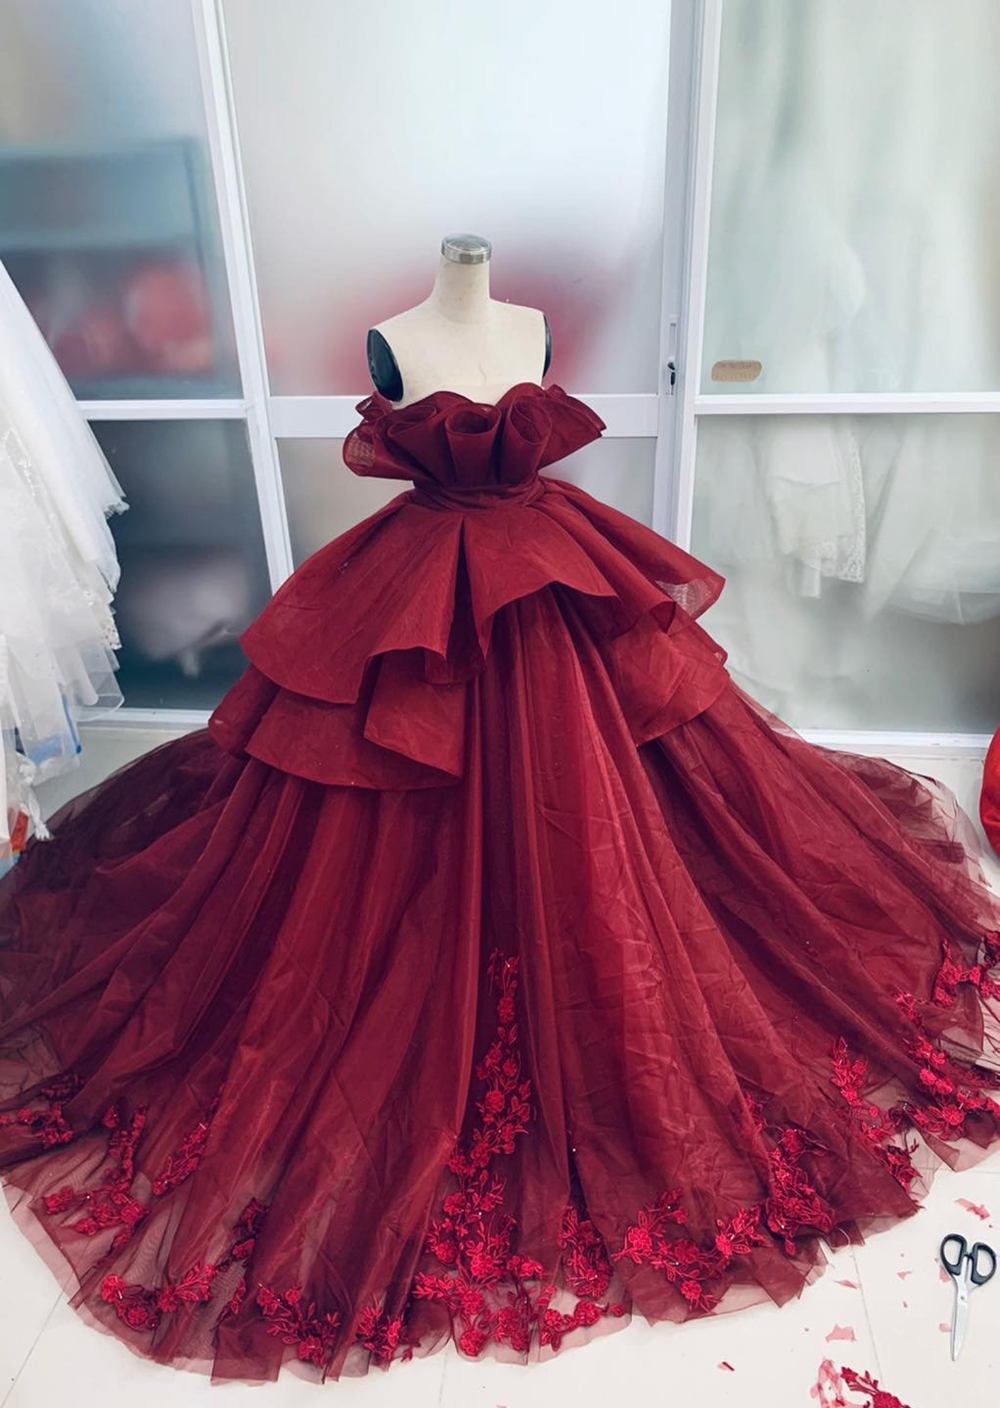 Unique Red Vintage Wedding Dress Made to Measure Wedding   Etsy ...